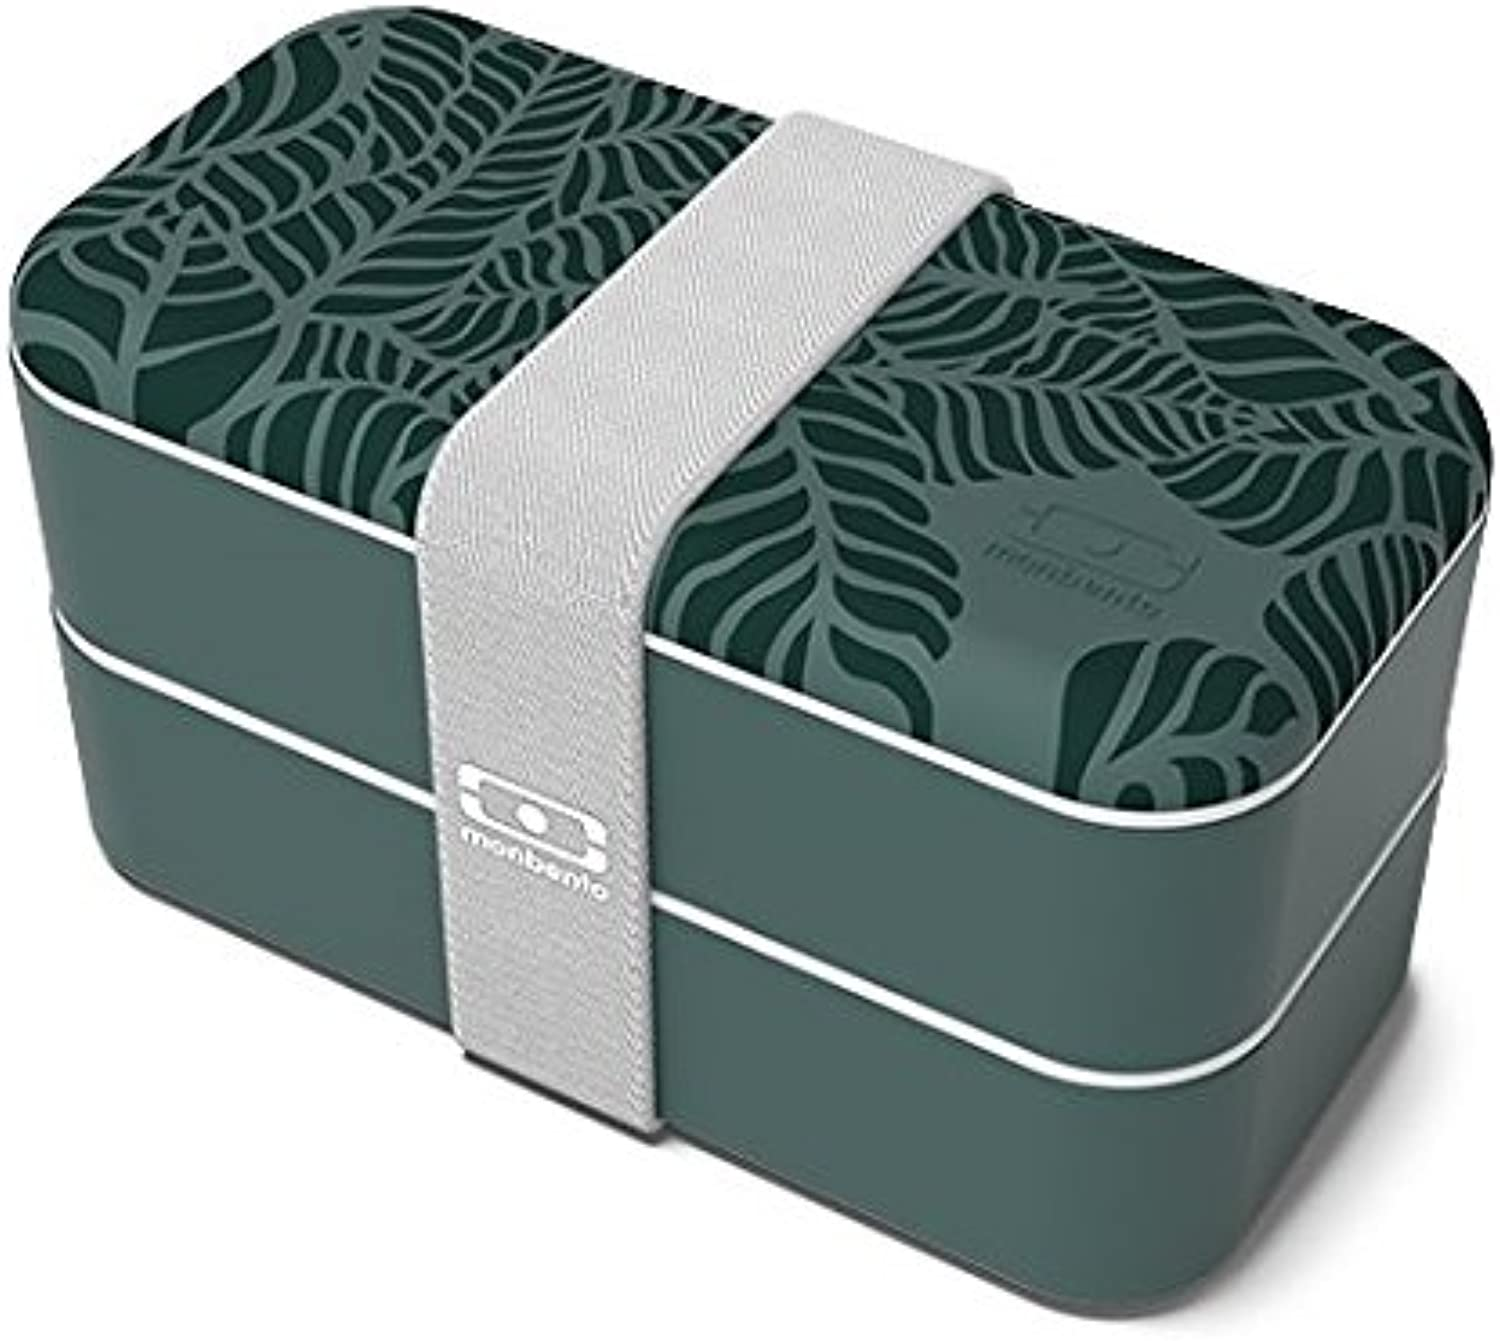 MB Original Jungle Lunch Box Monbento Monbento Monbento B07C9LZ874 ac6d1b